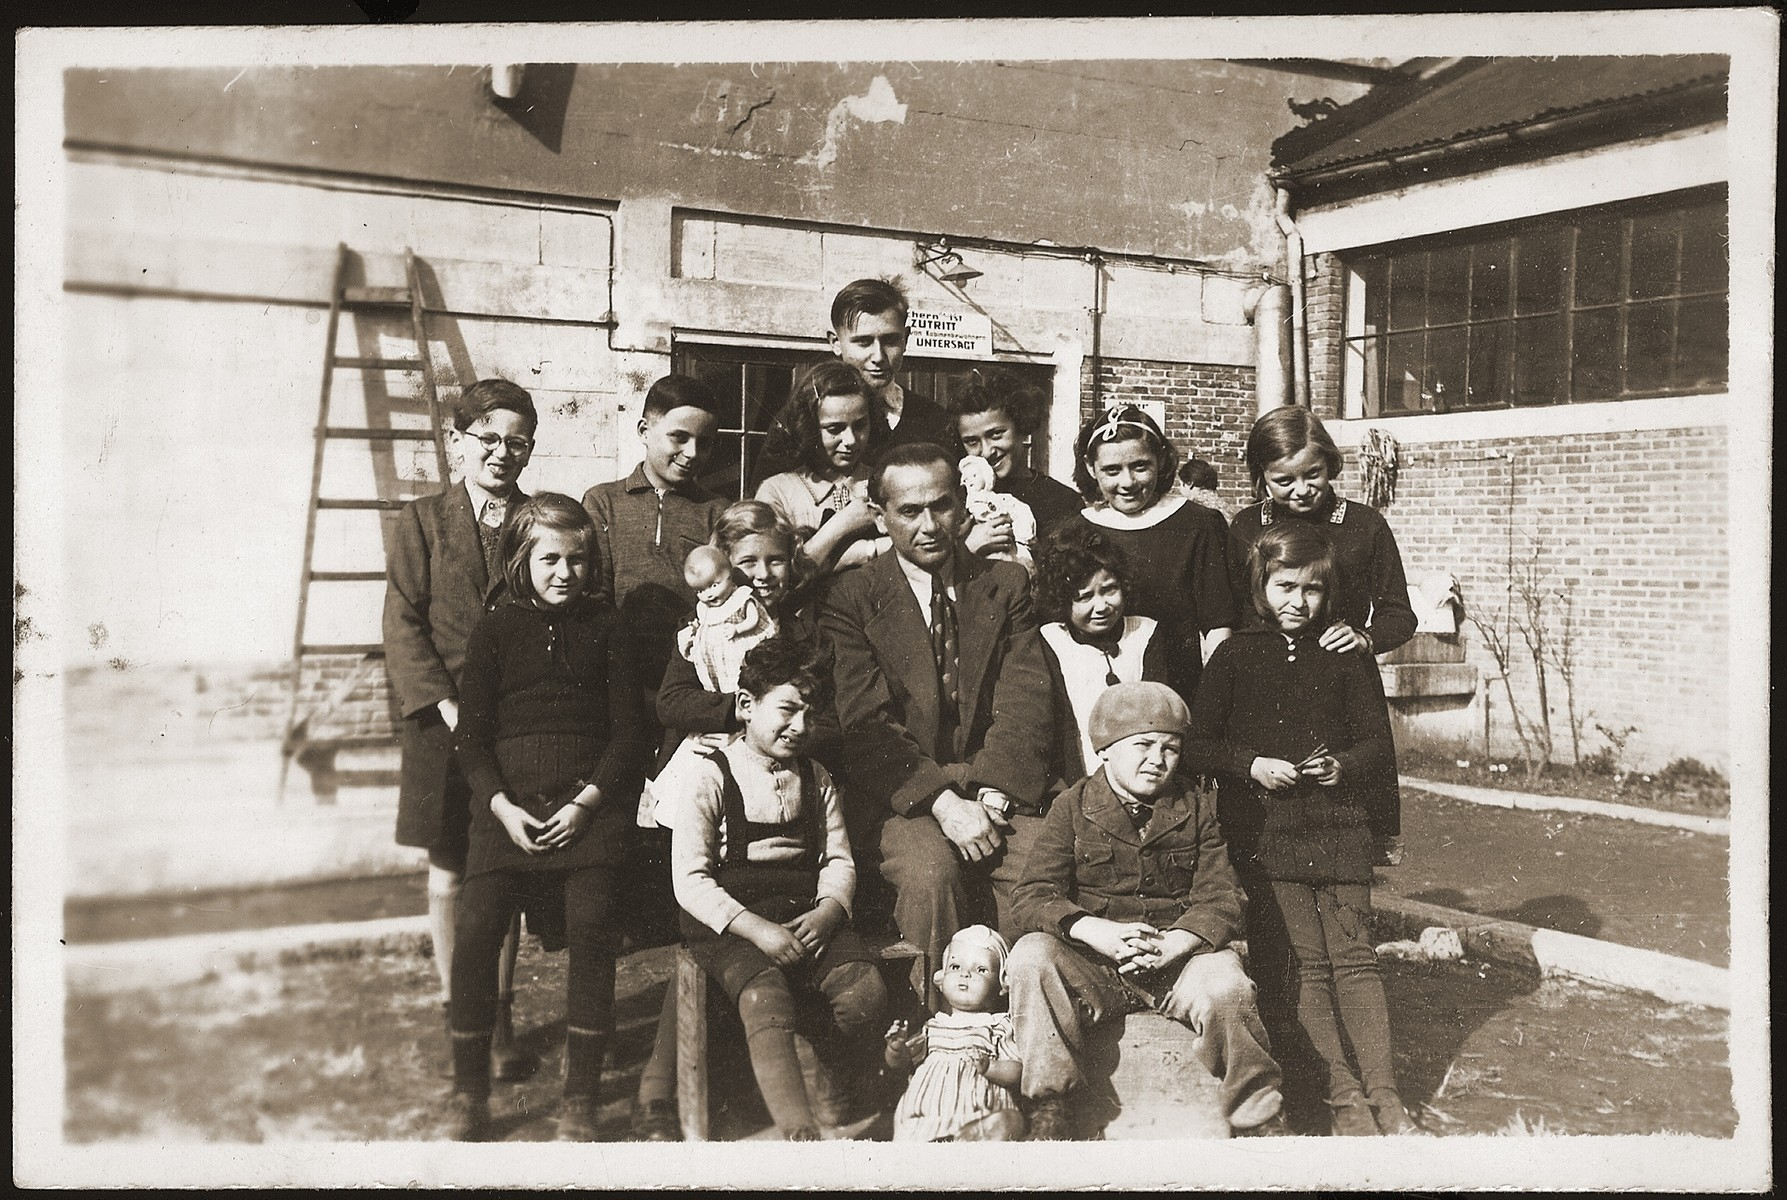 A class of Jewish refugee children in the Pingliang refugee camp near Shanghai.  On the right in the back row is Hannelore Mansbacher (now Hannah Weill).